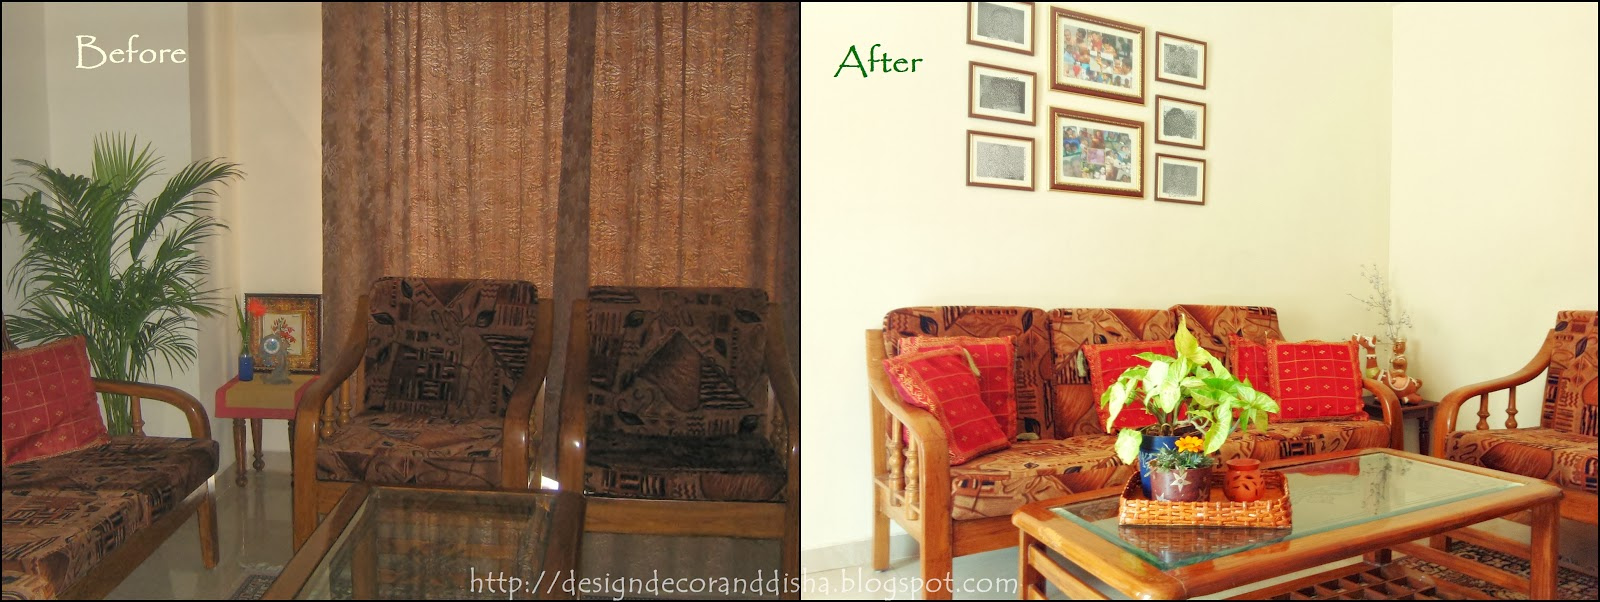 Design decor disha quirky decorating ideas for Quirky living room ideas